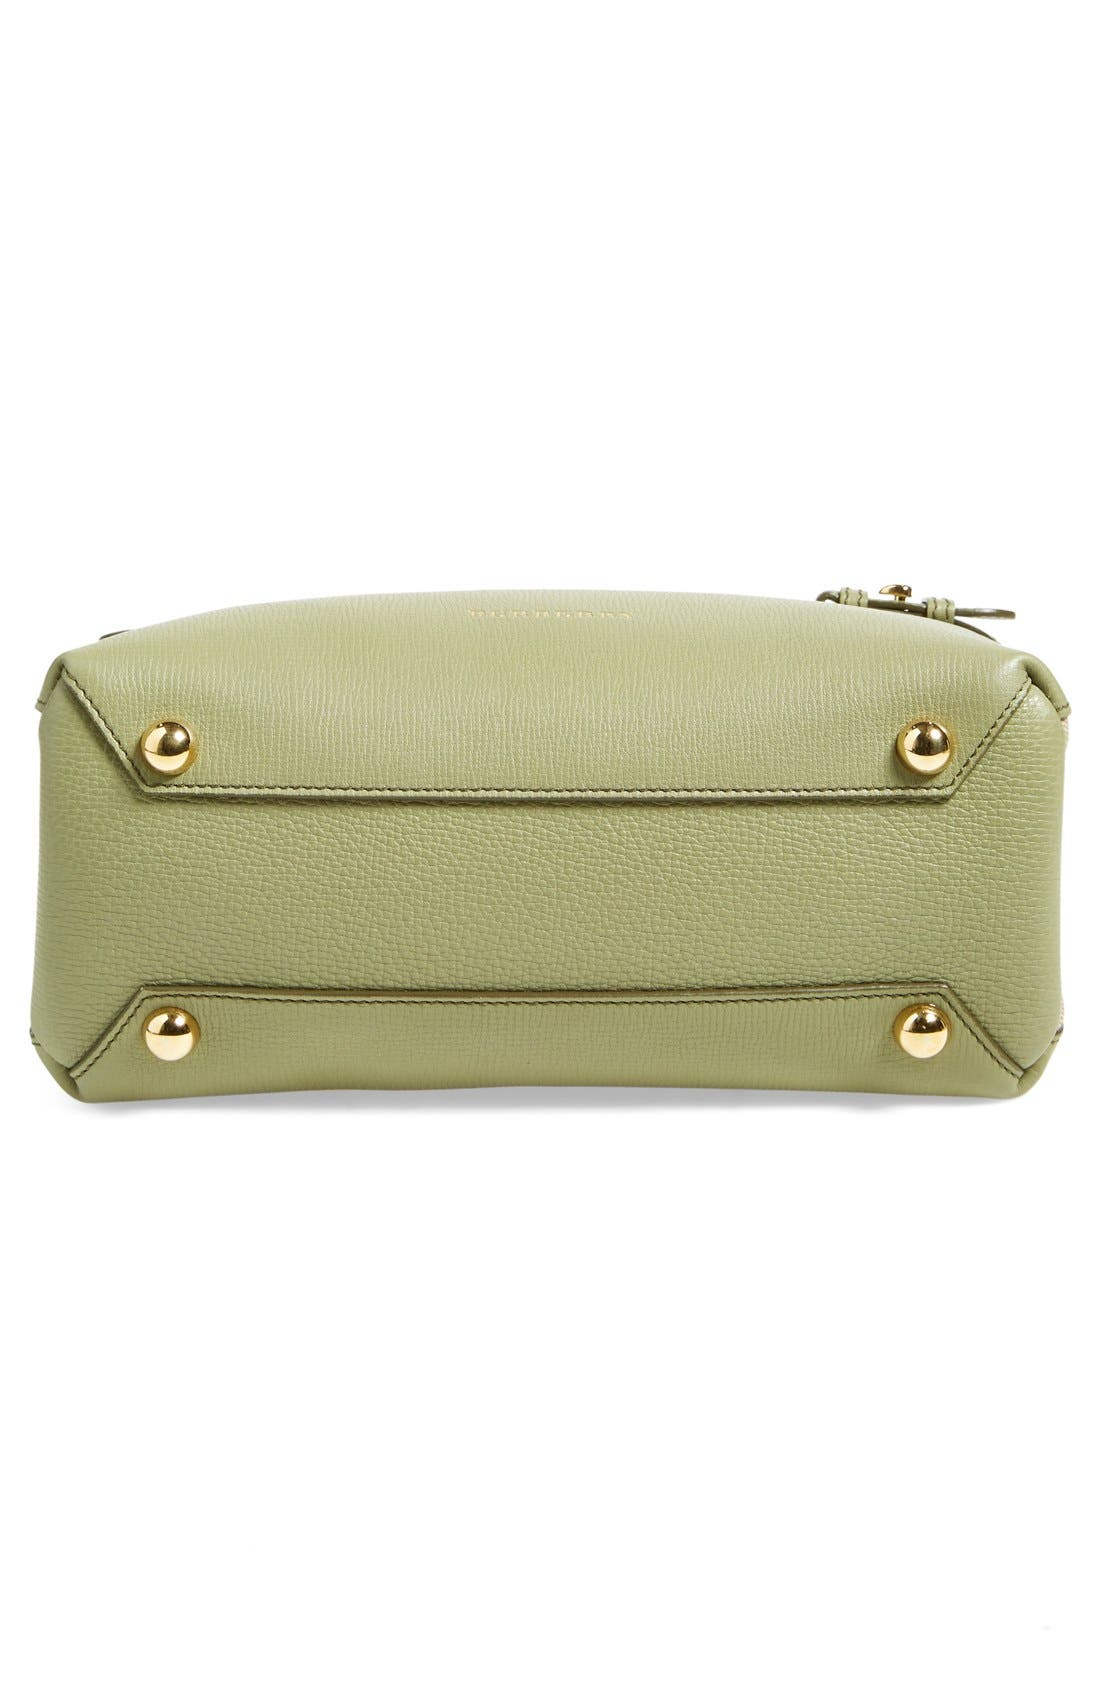 'Small Banner' Leather Tote,                             Alternate thumbnail 6, color,                             Pale Pistachio Green